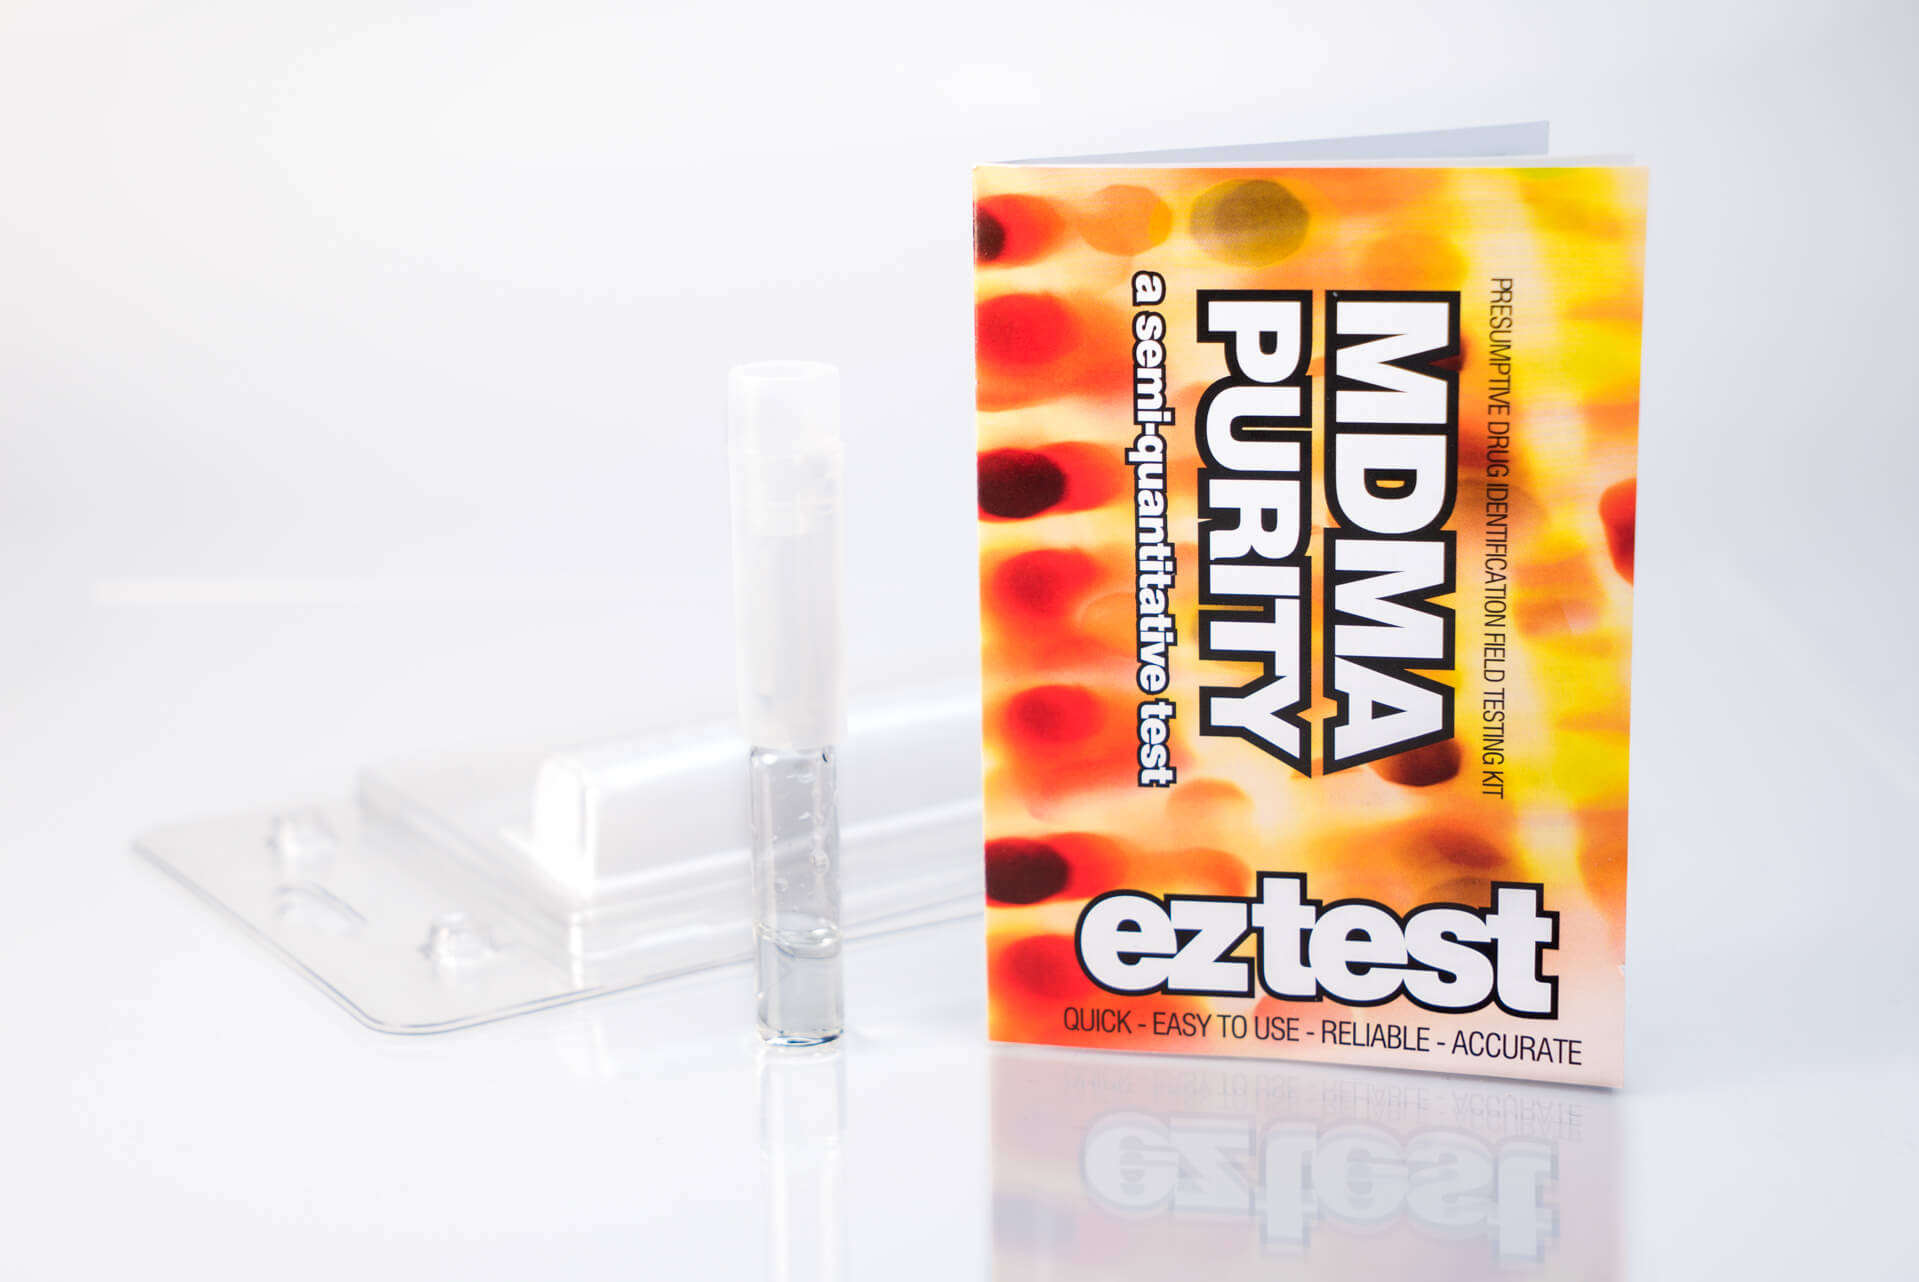 MDMA Purity Single Use Drug Testing Kit